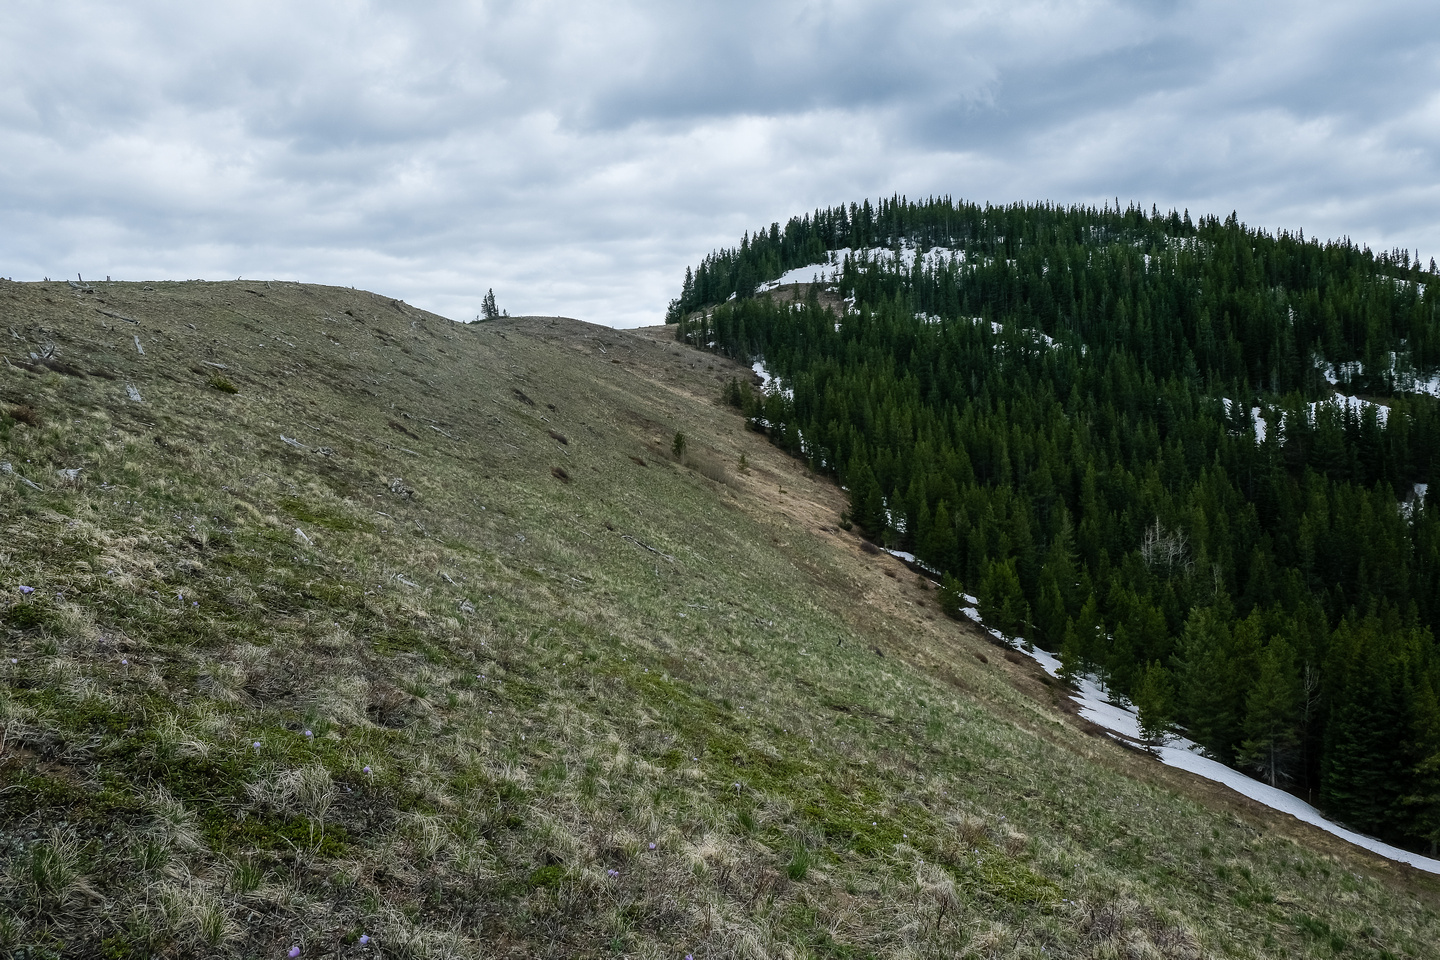 Views to the north summit.